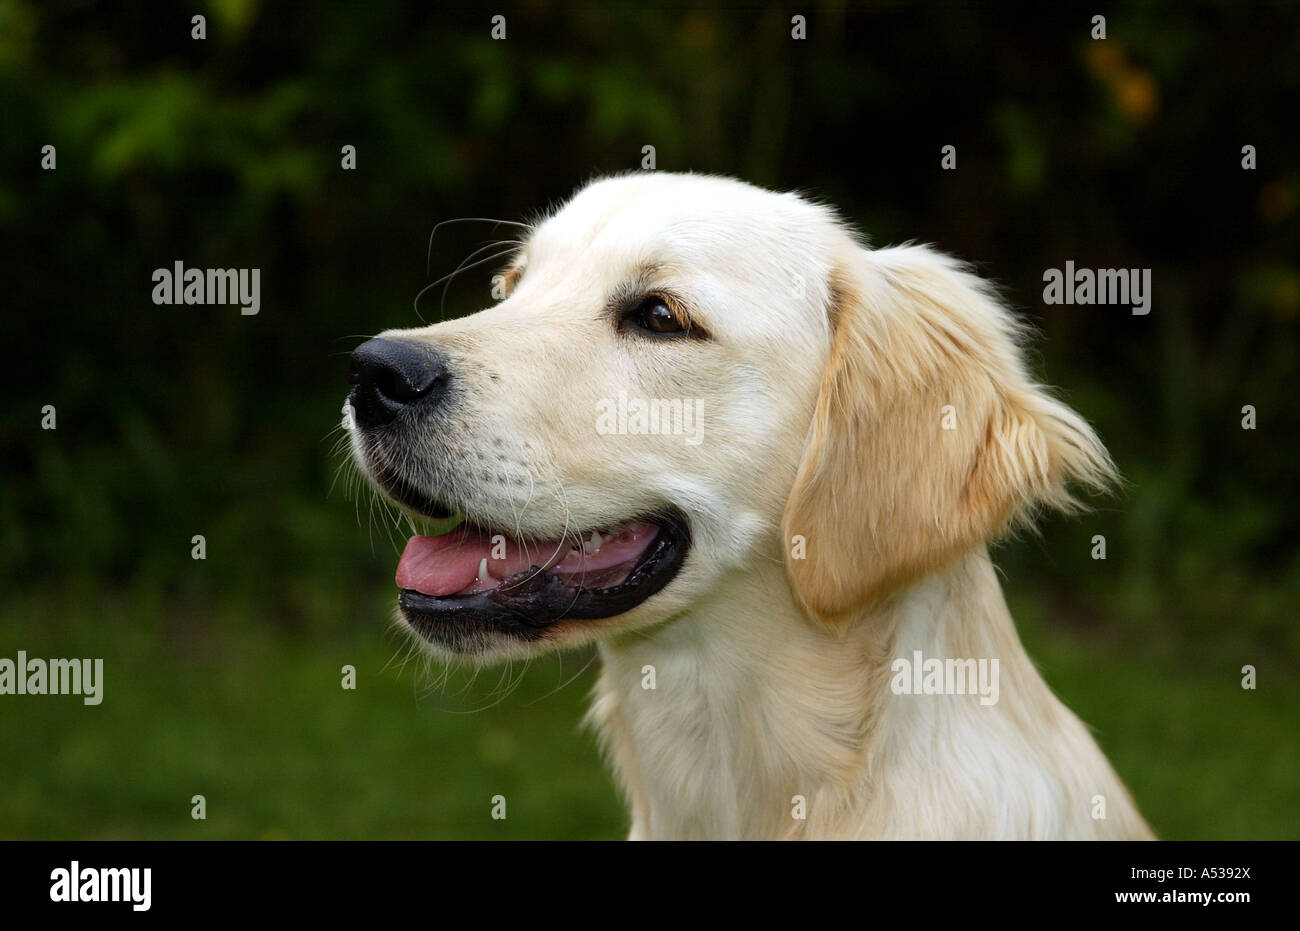 Young Golden Retriever Dog looking left - Stock Image